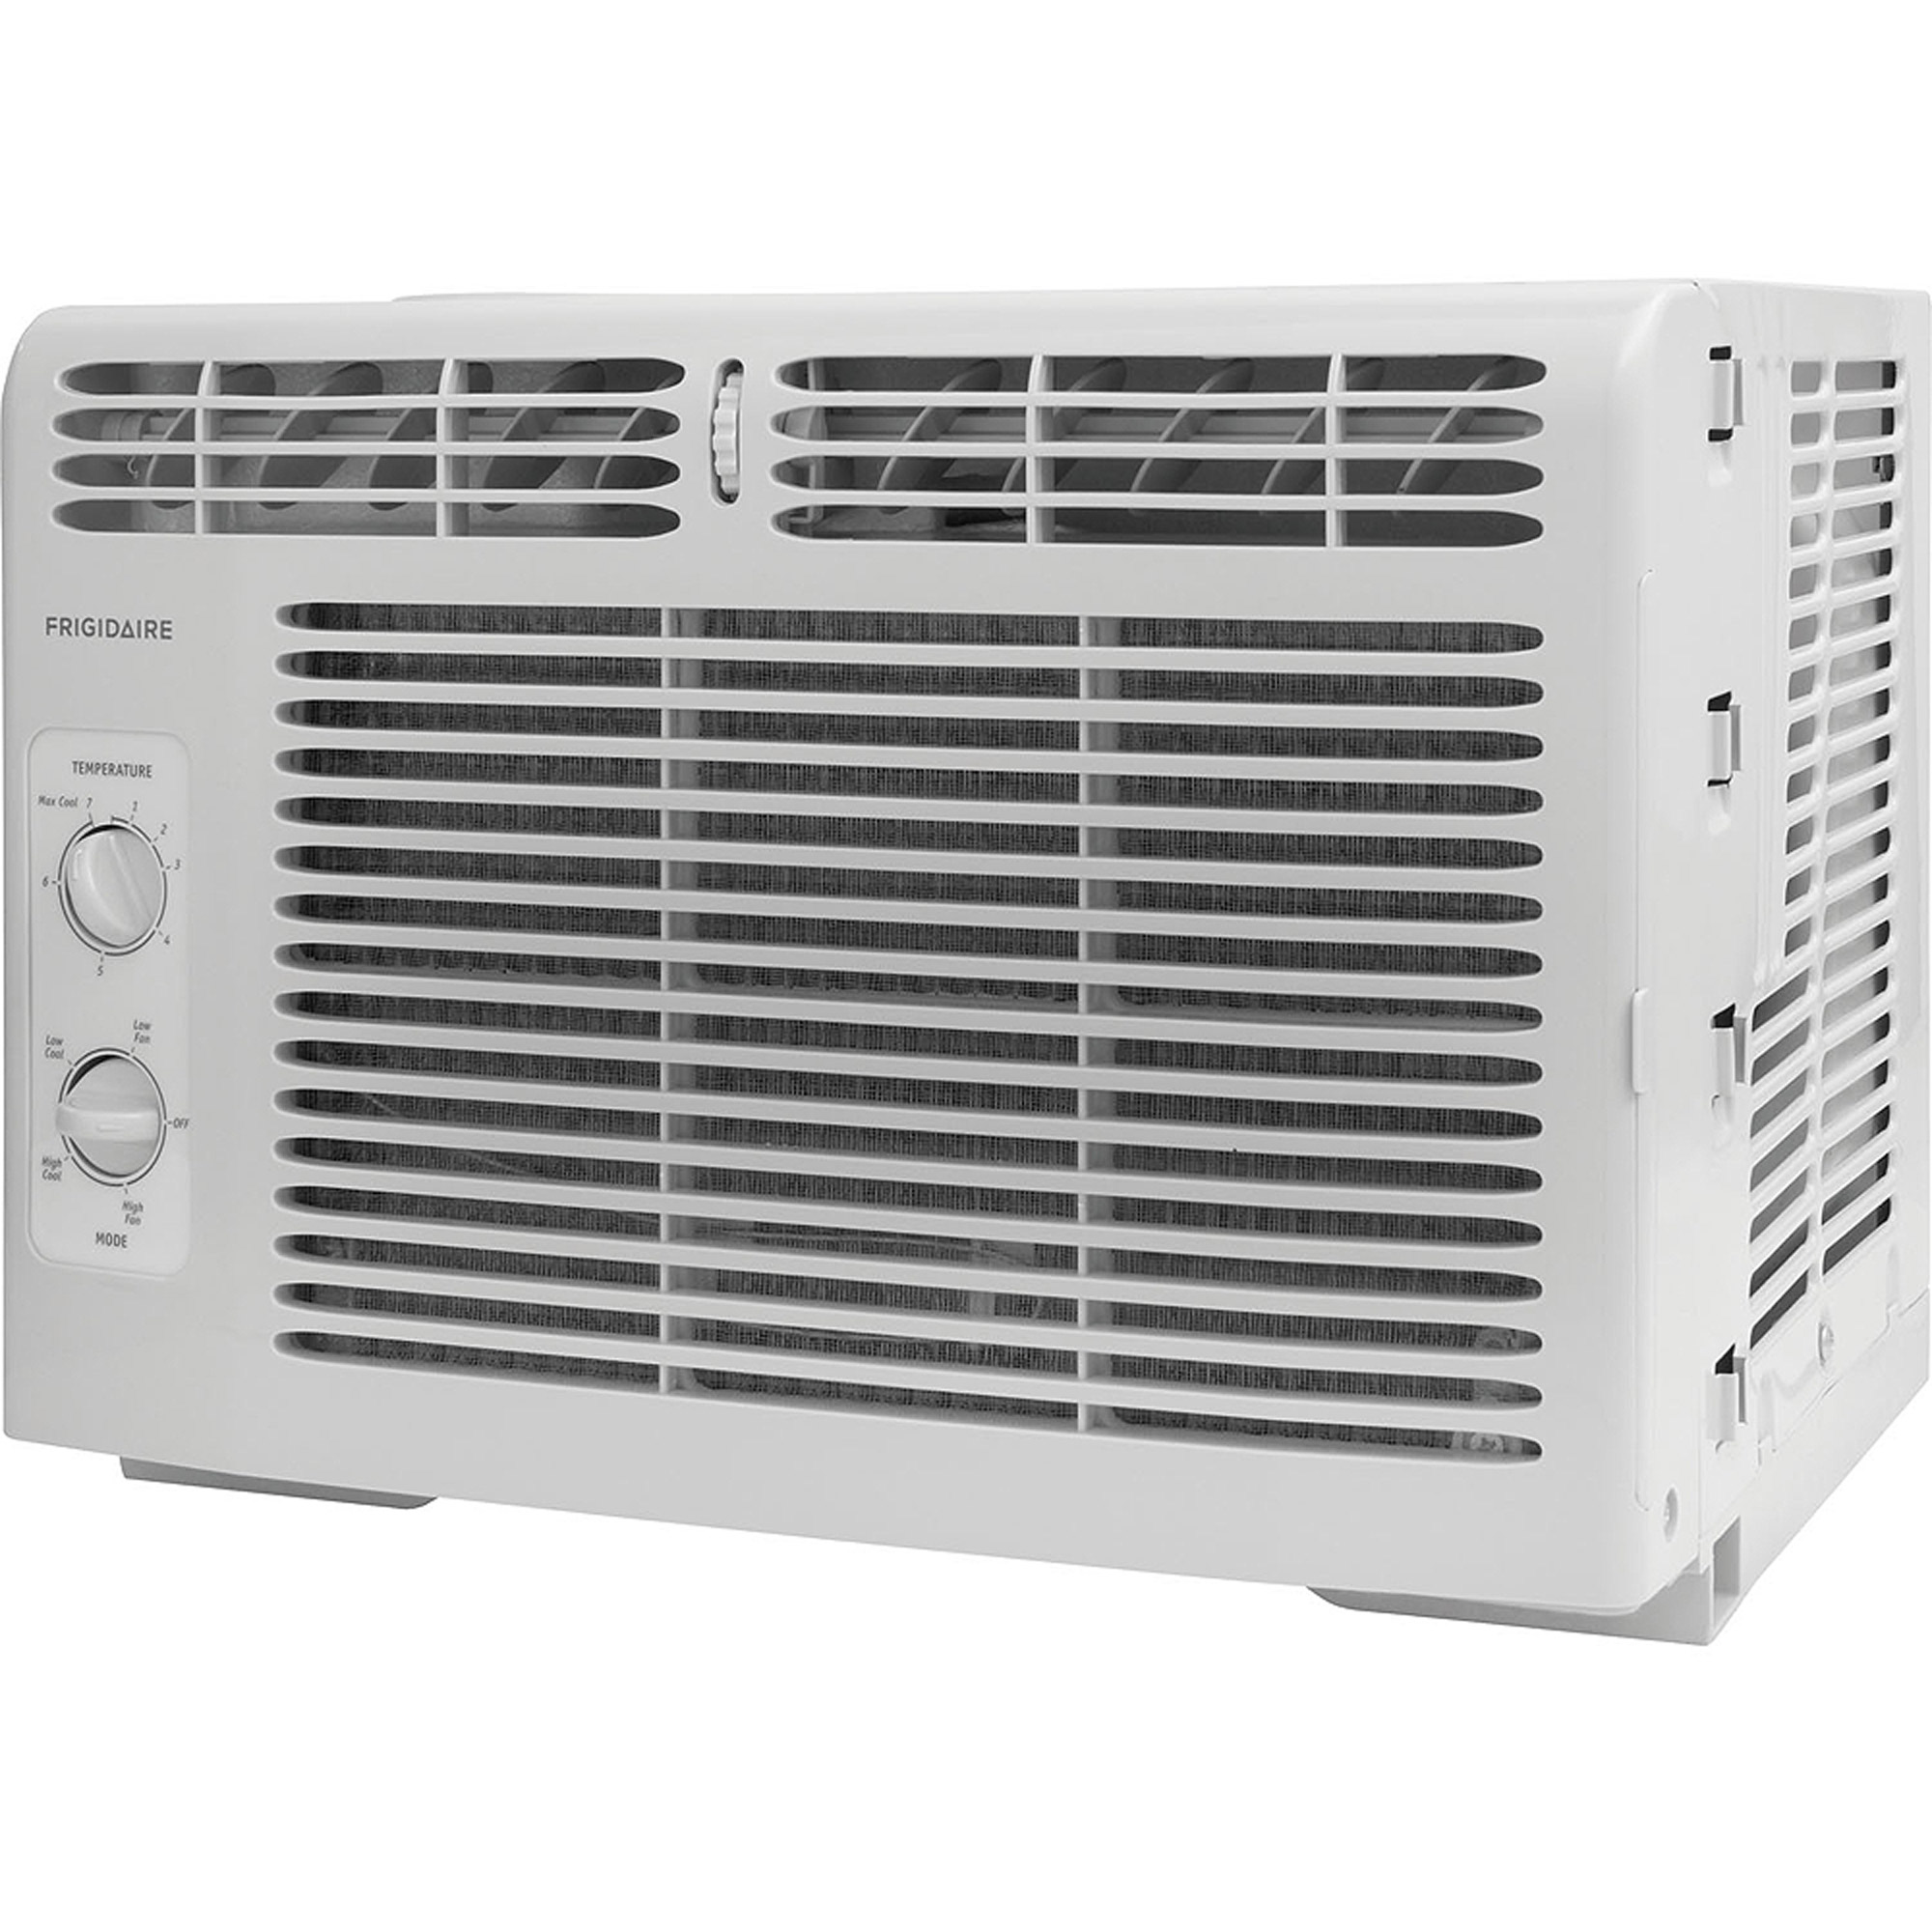 e1a4904d 038c 4d66 9ab7 0f63bd584321_1.b6bfd53803cbbef4561e73cb4153ca48 frigidaire 5,000 btu window air conditioner, 115v, ffra0511r1  at aneh.co